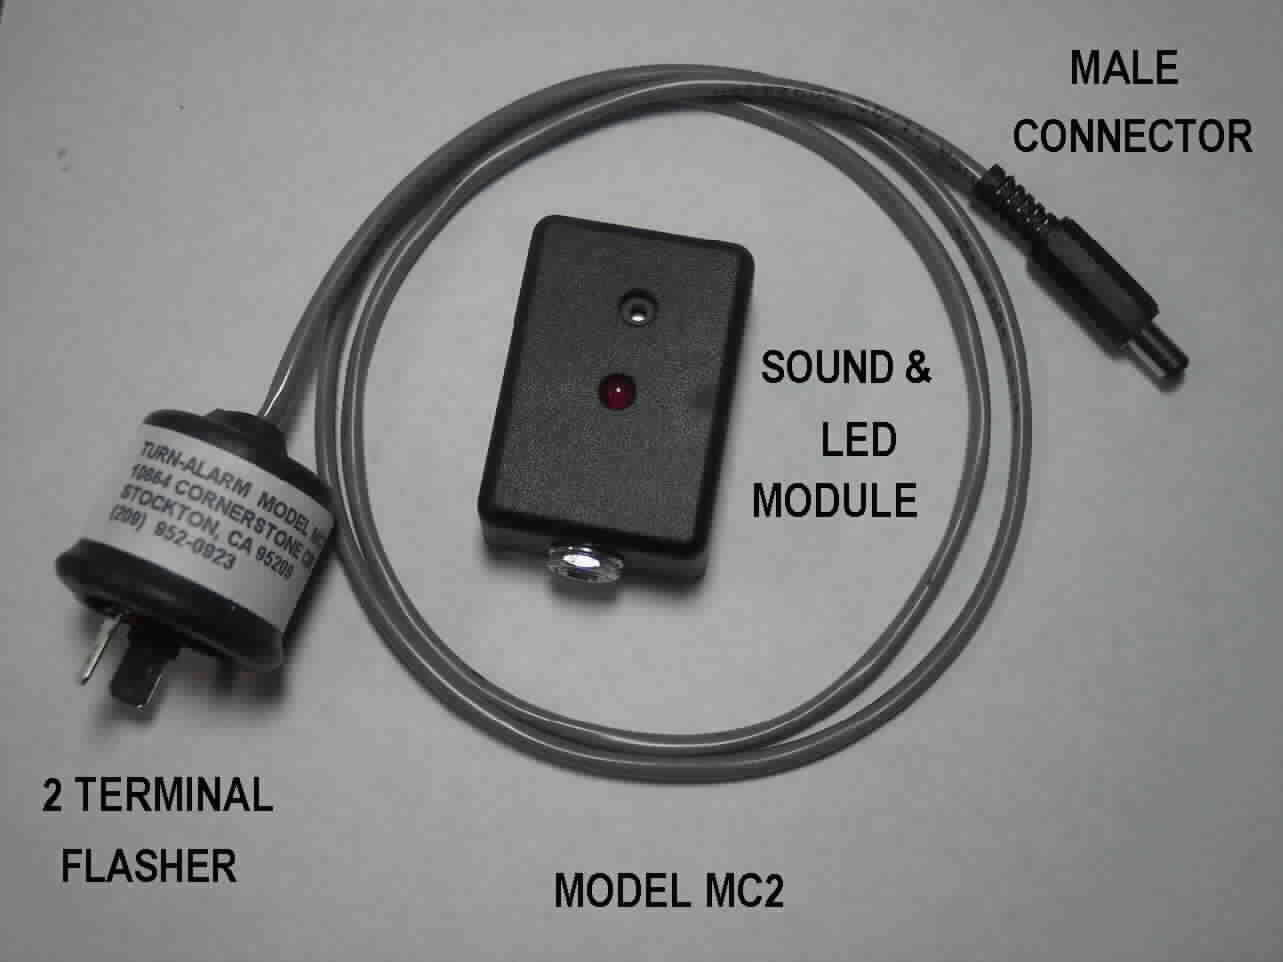 LOUD TURN SIGNAL FLASHER WITH REMOTE SOUND AND LED - MODEL MC-2 - FREE SHIP